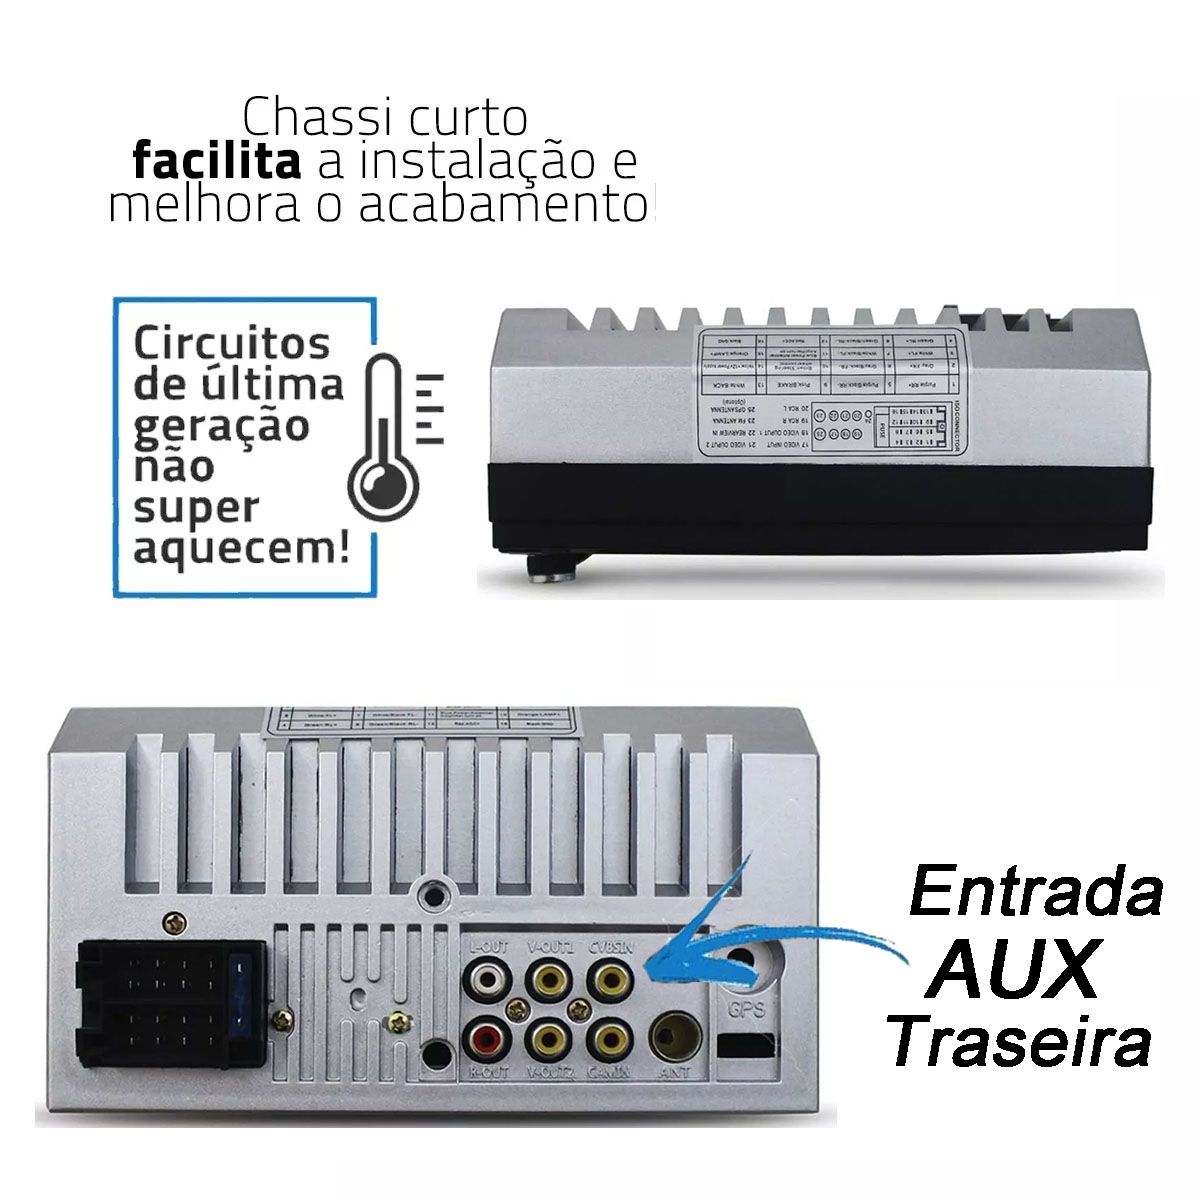 Central Multimídia Automotiva 7 Polegadas + Moldura Jeep Troller 2009/2013 Preta 2 Din